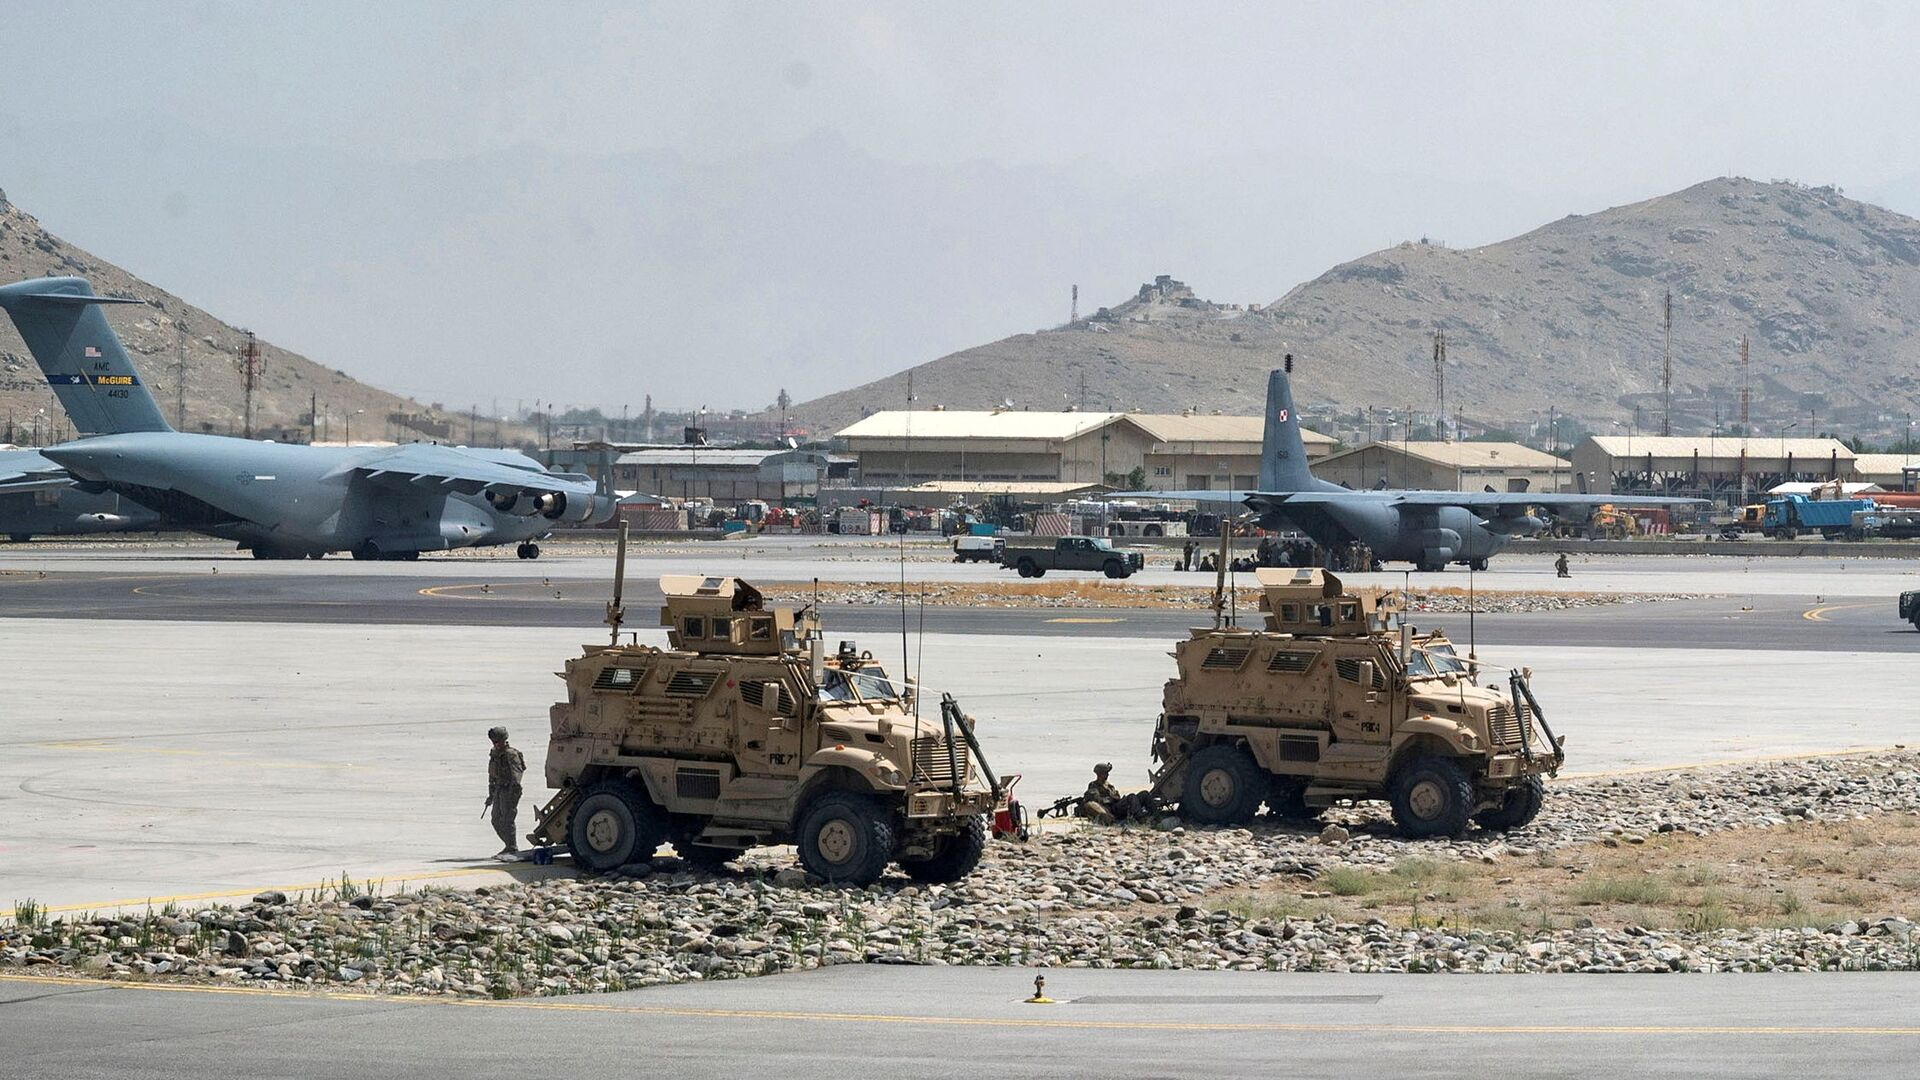 FILE PHOTO: FILE PHOTO: U.S. Army soldiers assigned to the 82nd Airborne Division patrol Hamid Karzai International Airport in Kabul, Afghanistan August 17, 2021. Picture taken August 17, 2021.  U.S. Air Force/Senior Airman Taylor Crul/Handout via REUTERS  THIS IMAGE HAS BEEN SUPPLIED BY A THIRD PARTY. THIS PICTURE WAS PROCESSED BY REUTERS TO ENHANCE QUALITY. AN UNPROCESSED VERSION HAS BEEN PROVIDED SEPARATELY./File Photo/File Photo - Sputnik International, 1920, 07.09.2021